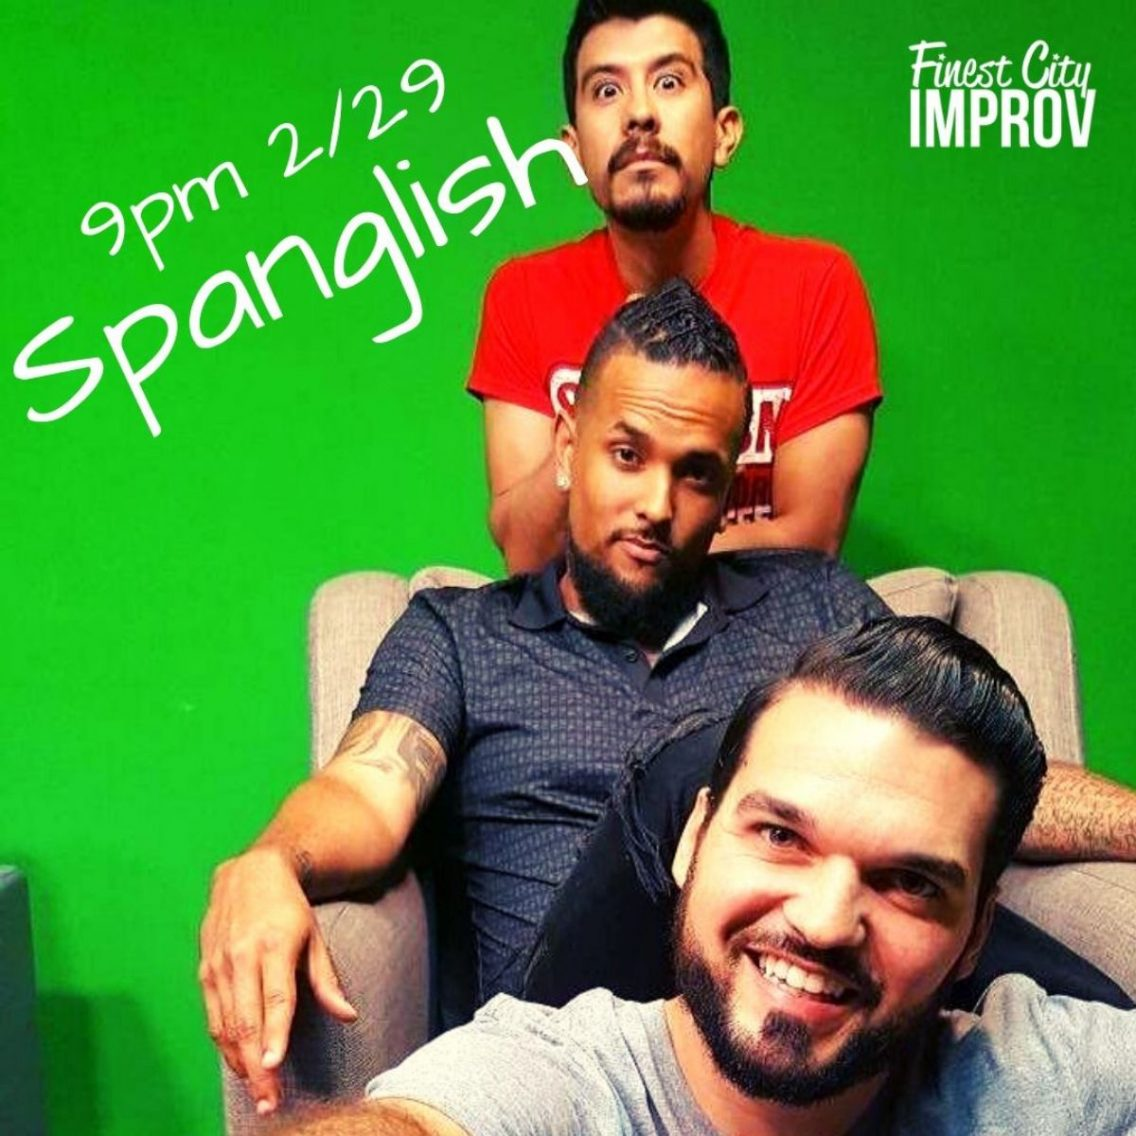 Spanglish Improv Team